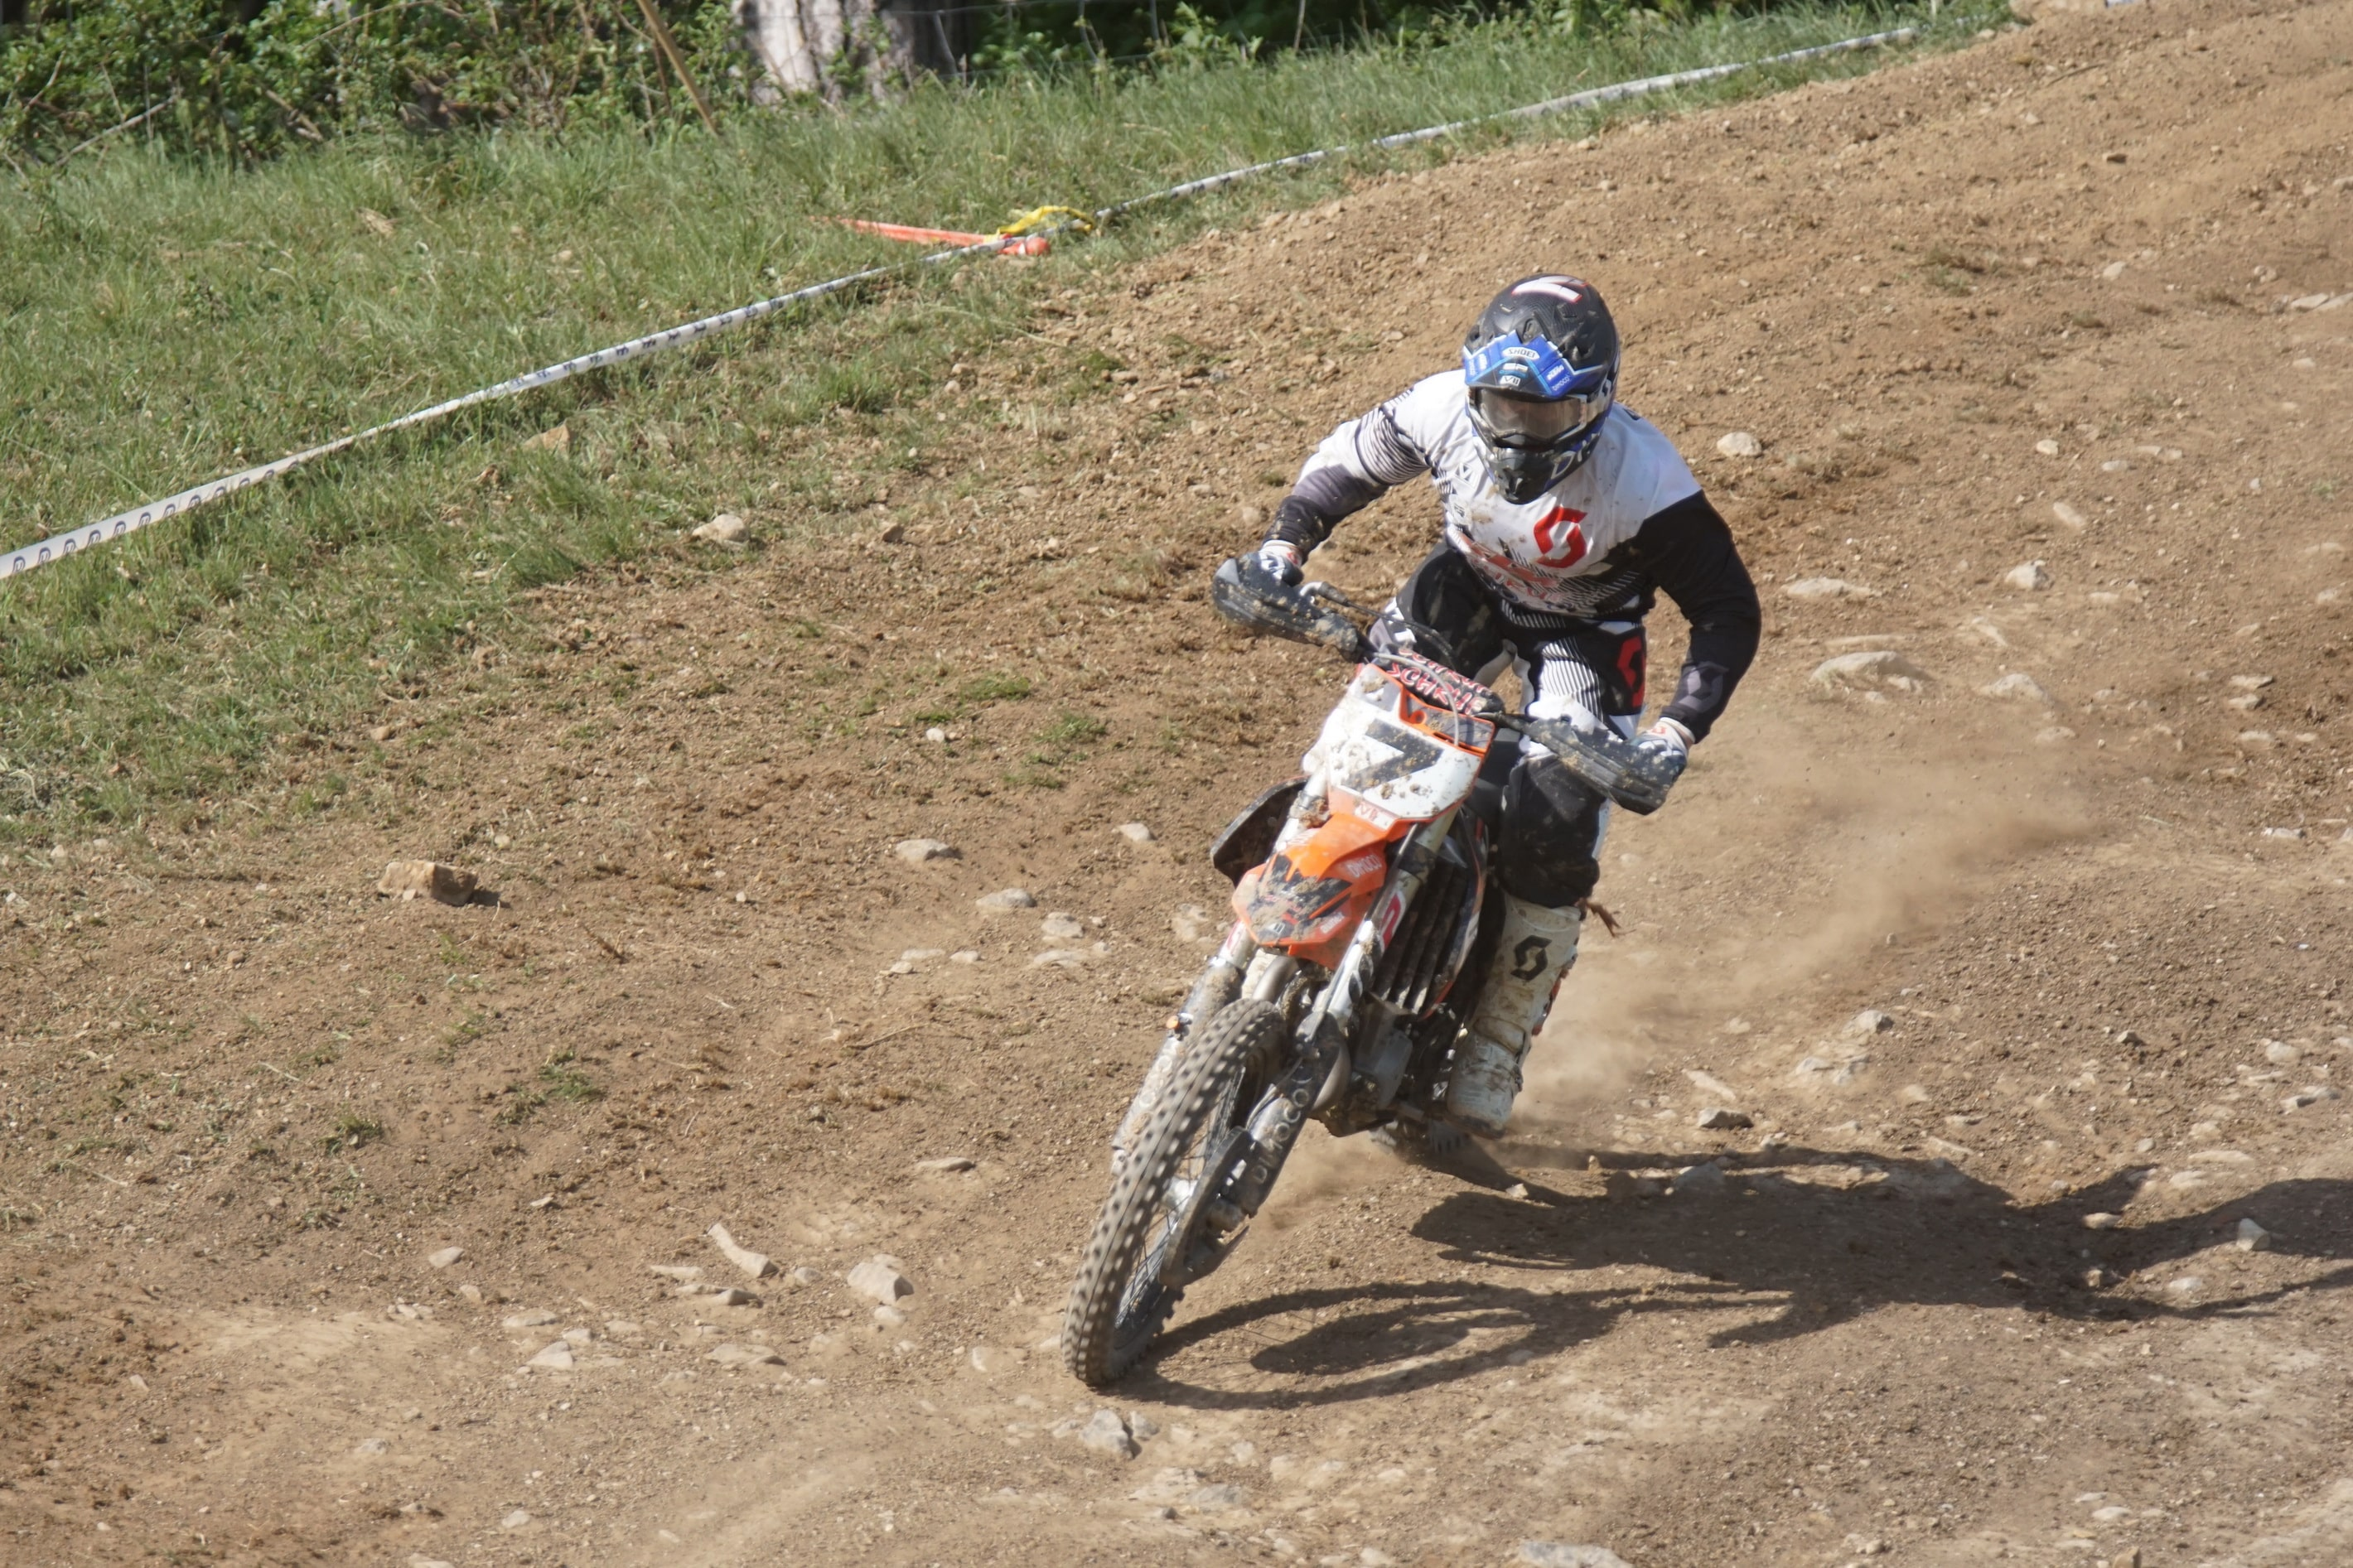 DSC 875_Moto Cross Sittendorf Teil1 am 29.04.2018